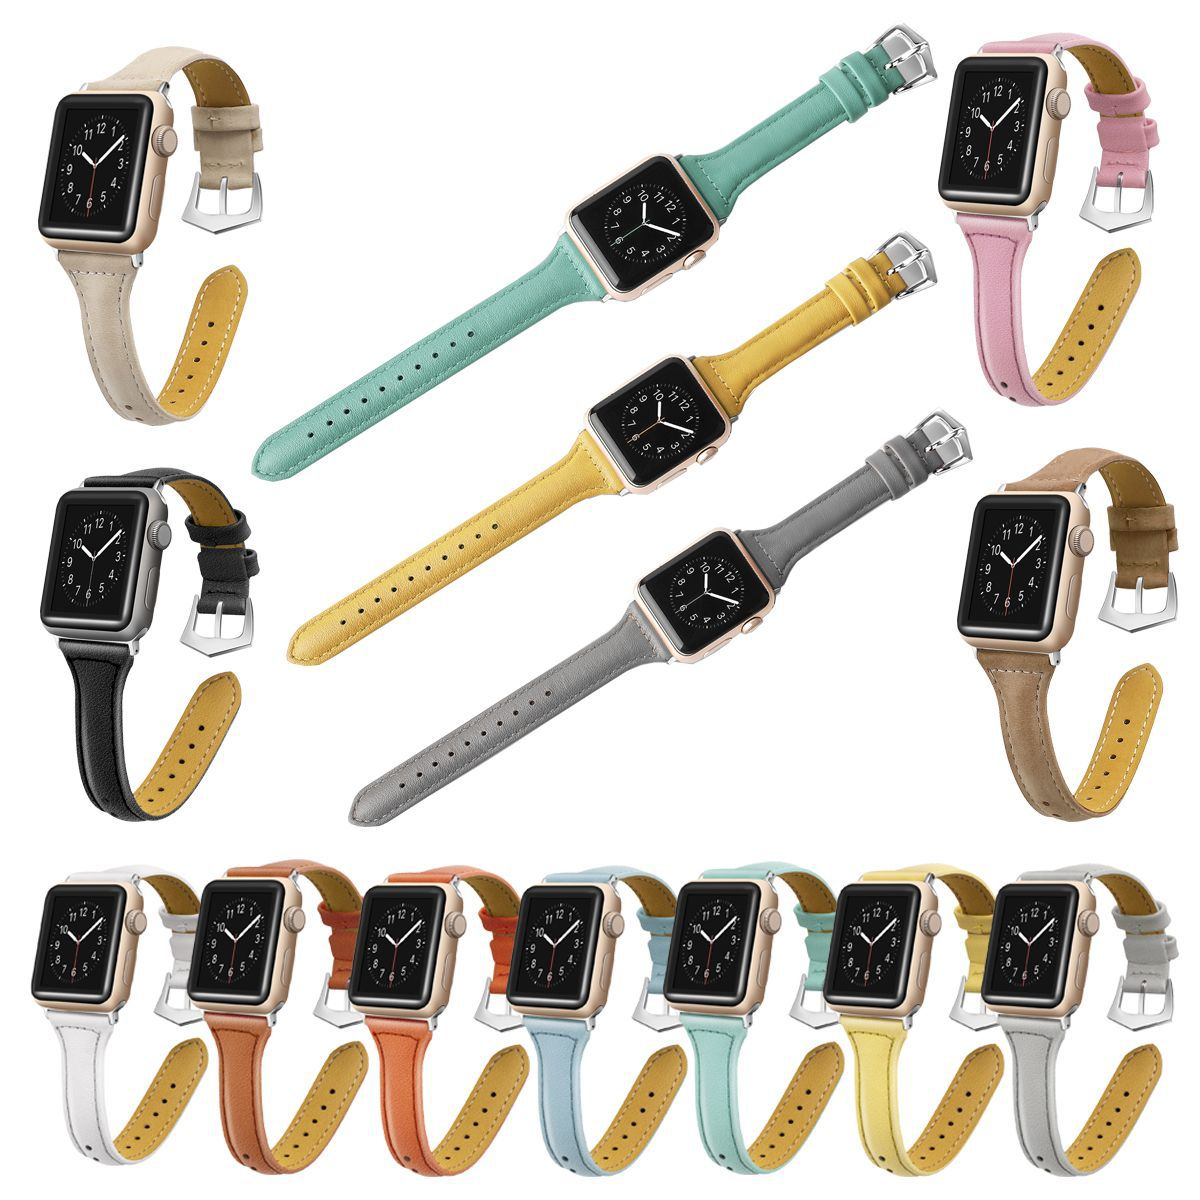 'T'-Shape 11 Colors Leather Strap For Apple Watch Series 1,2,3,4 -  - TomorrowSummer